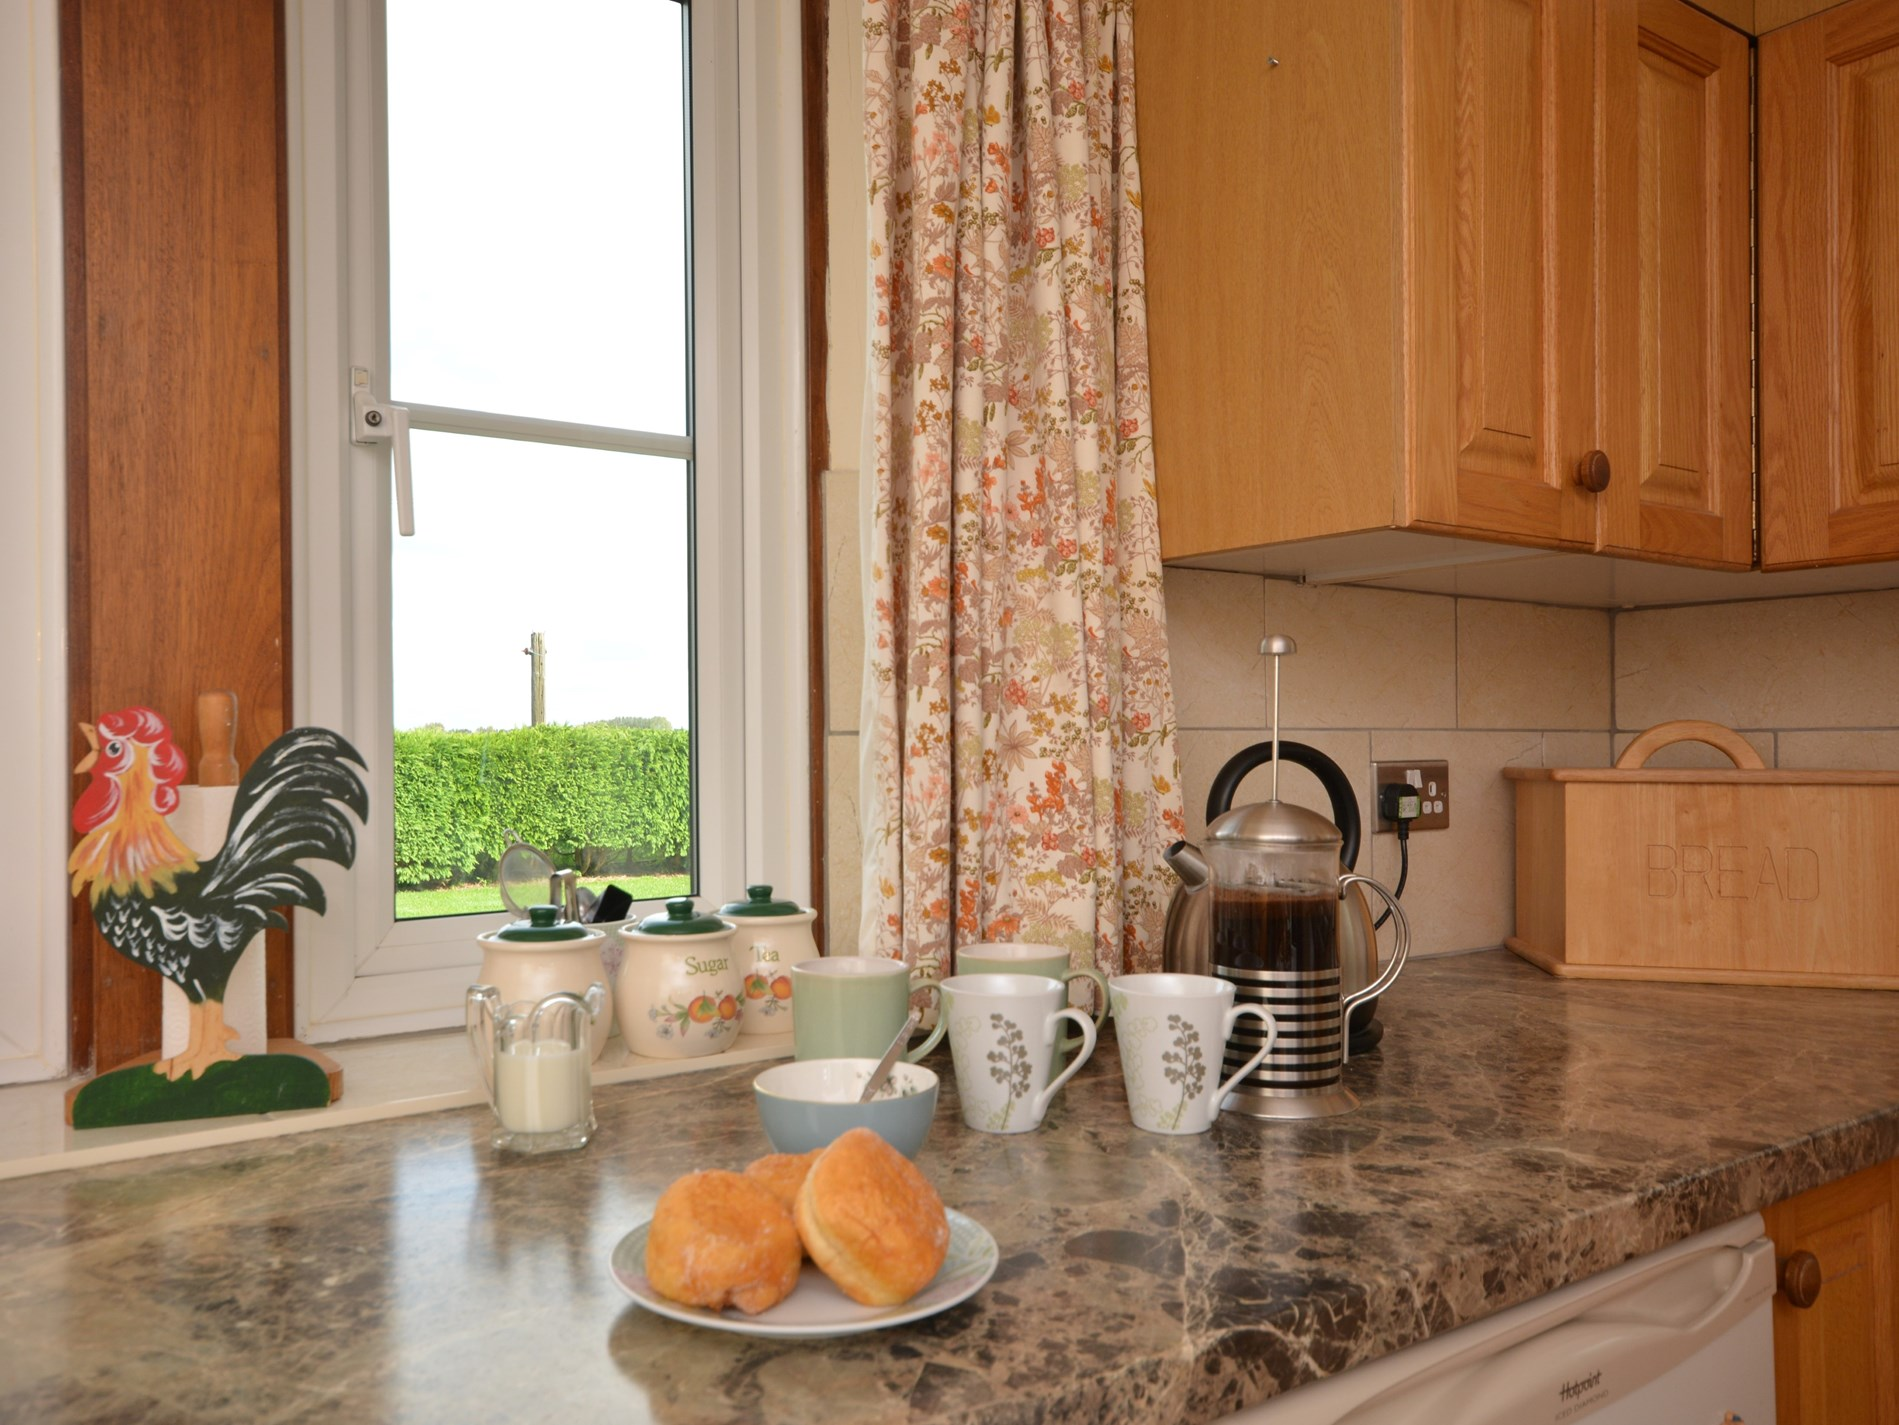 Enjoy your morning cup of coffee with a countryside view